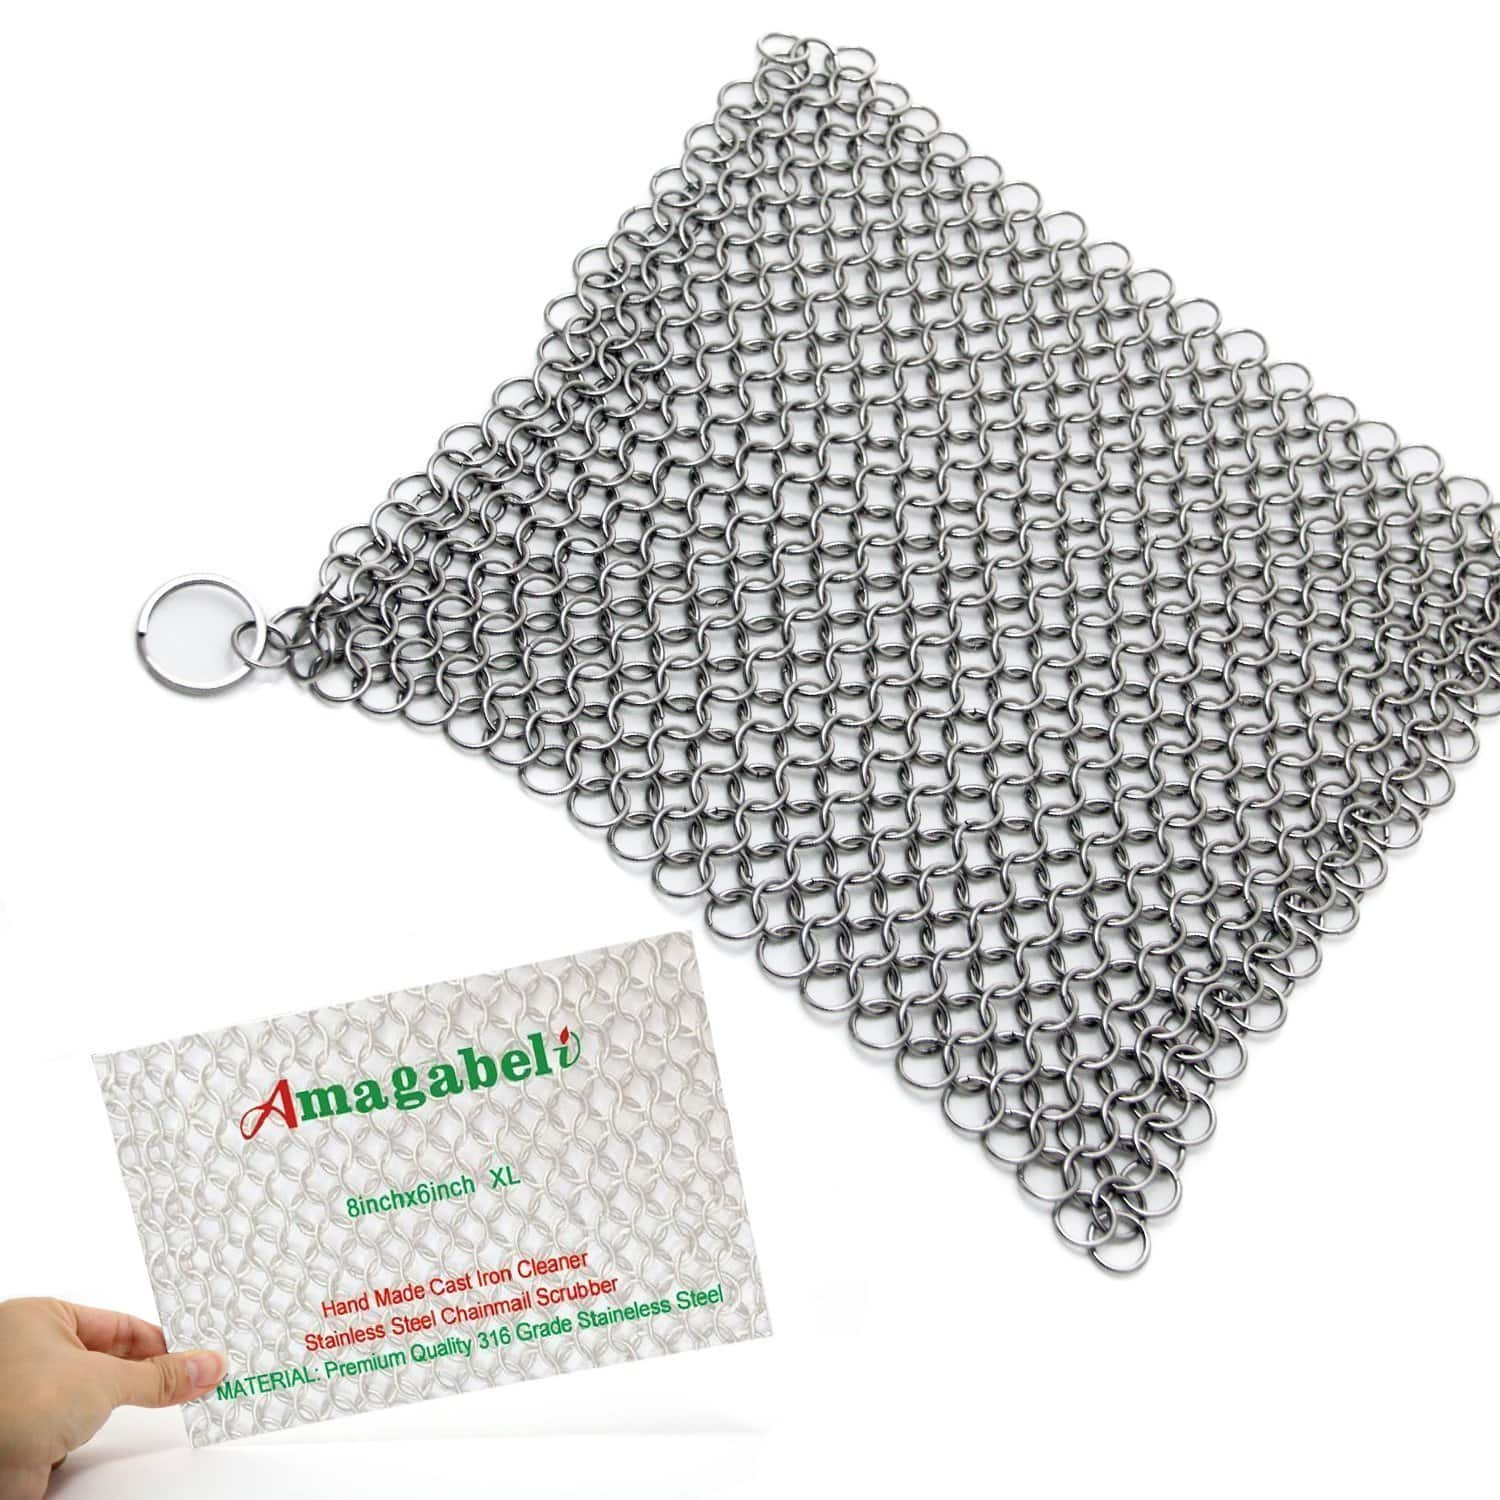 """8""""x6"""" Stainless Steel 316L Cast Iron Cleaner Chainmail Scrubber - $6.79 (AC) @ Amazon"""